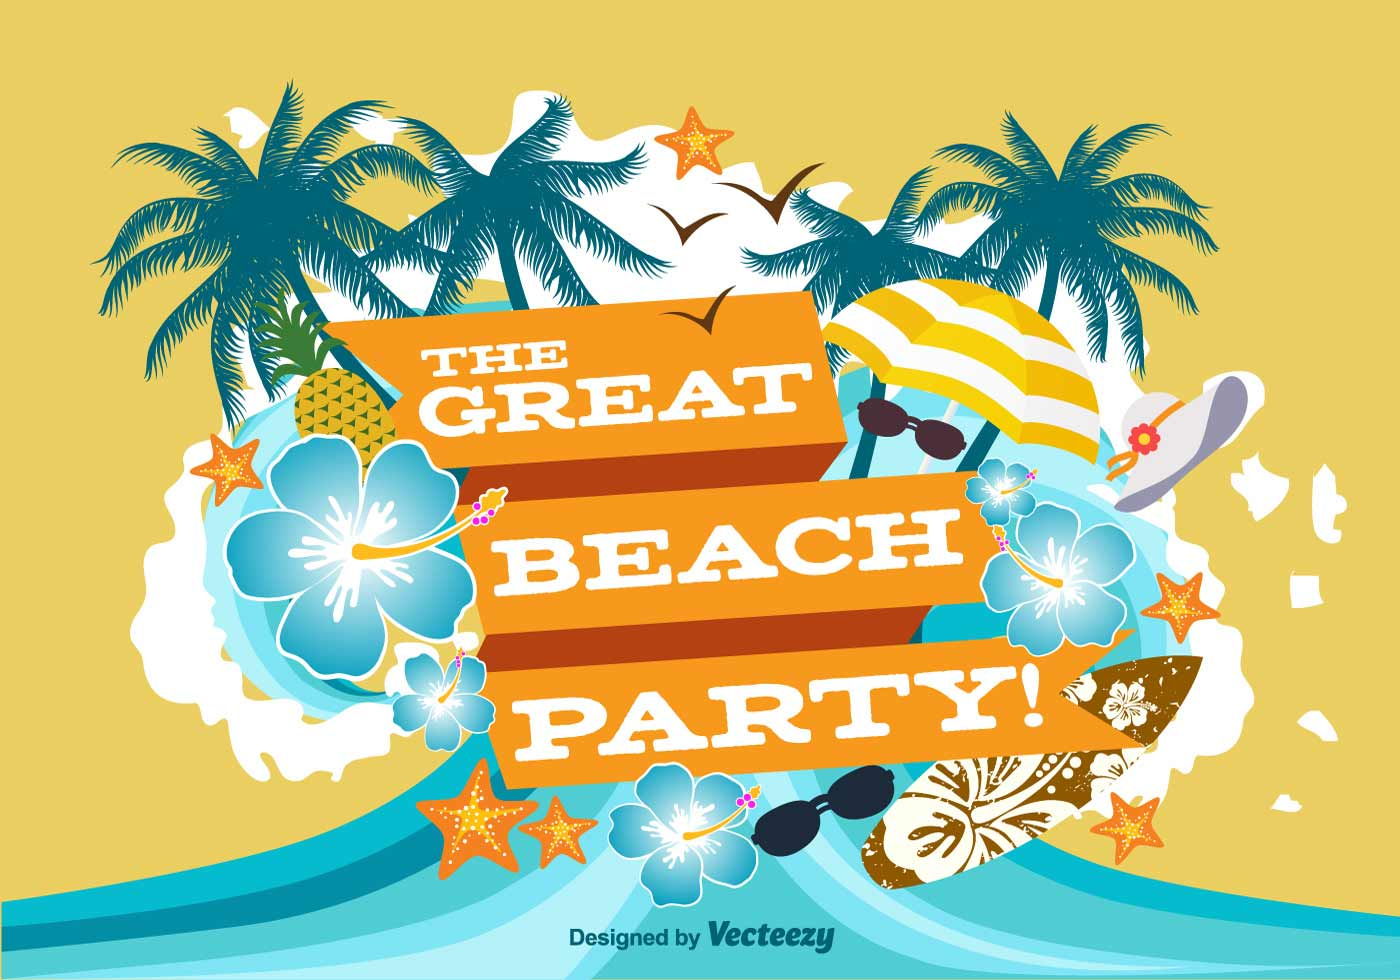 Beach Party Poster Illustration - Download Free Vector Art, Stock Graphics & Images